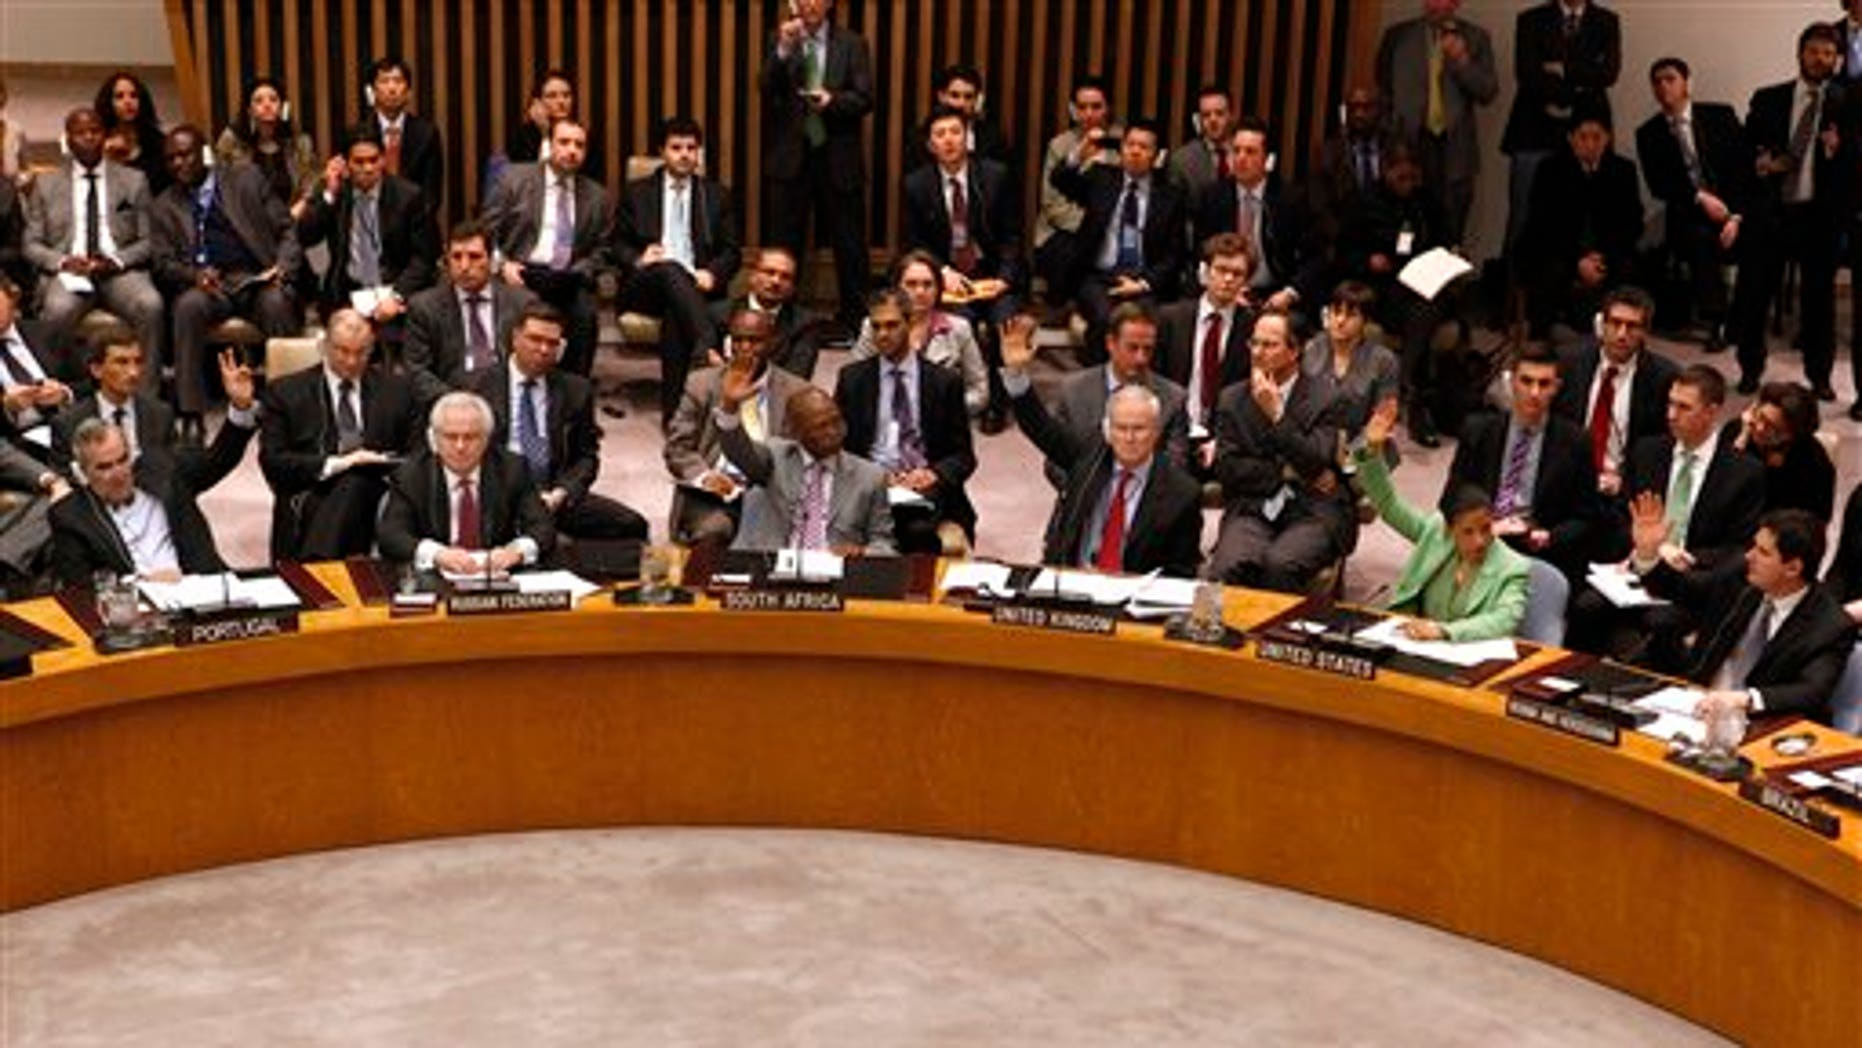 """March 17: Russia, second left, abstains as member states vote to approve a resolution that will impose a no-fly zone over Libya during a meeting of the United Nations Security Council at UN headquarters.  In addition to the no-fly zone, the resolution authorizes """"all necessary measures"""" to protect civilians from attacks by Muammar Qaddafi's forces. (AP)"""